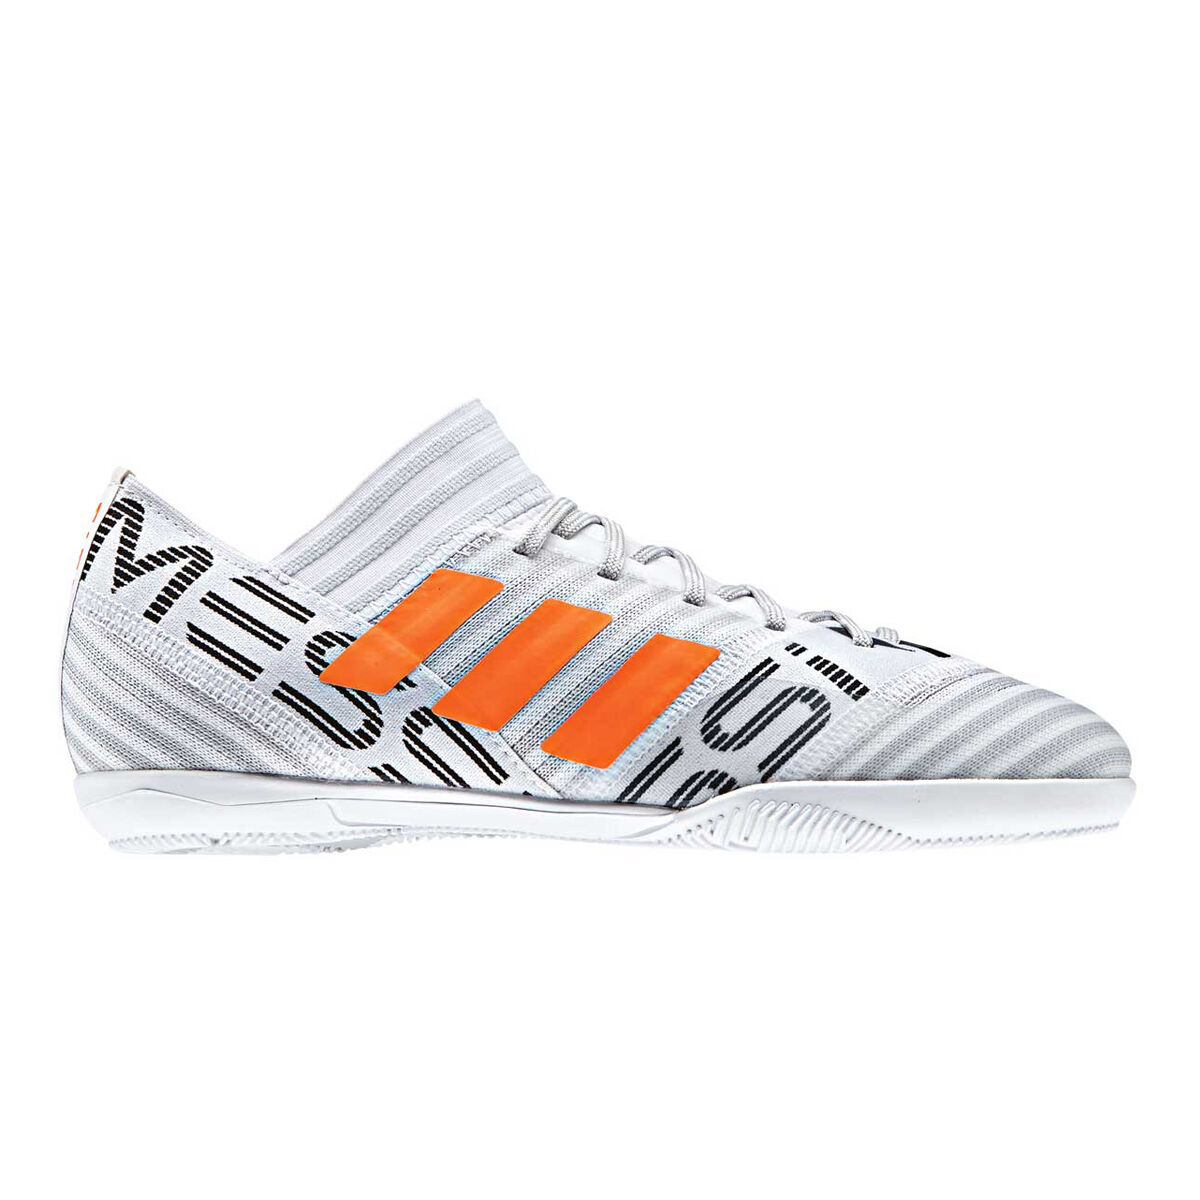 32502c333f2 ... release date adidas nemeziz messi 17.3 junior indoor soccer shoes white  orange us 13 white 36b01 ...